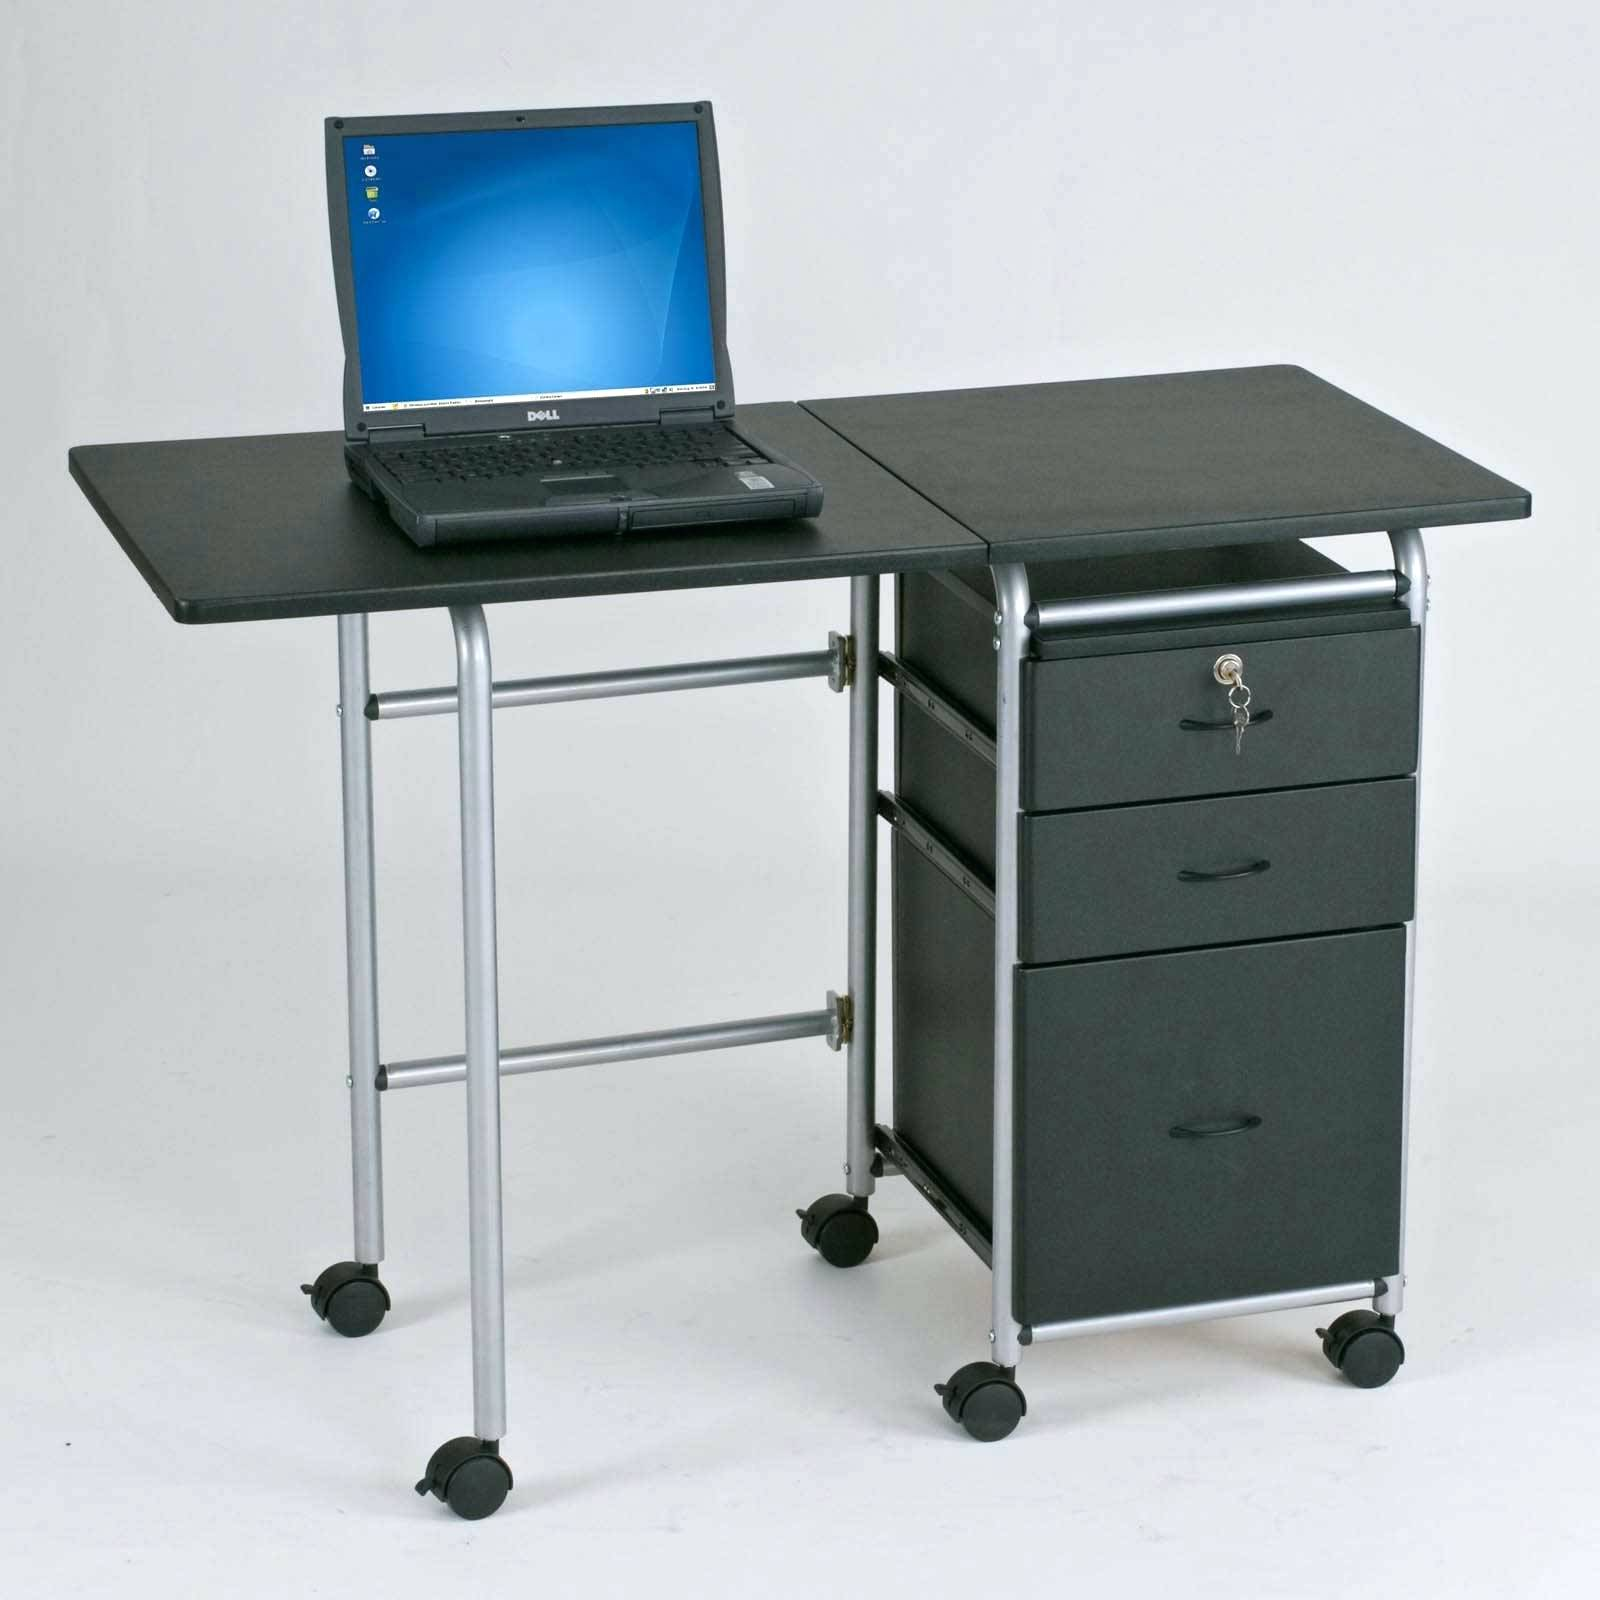 Office Depot Glass Computer Desk | Office Depot Desks | Computer Desk Under $50